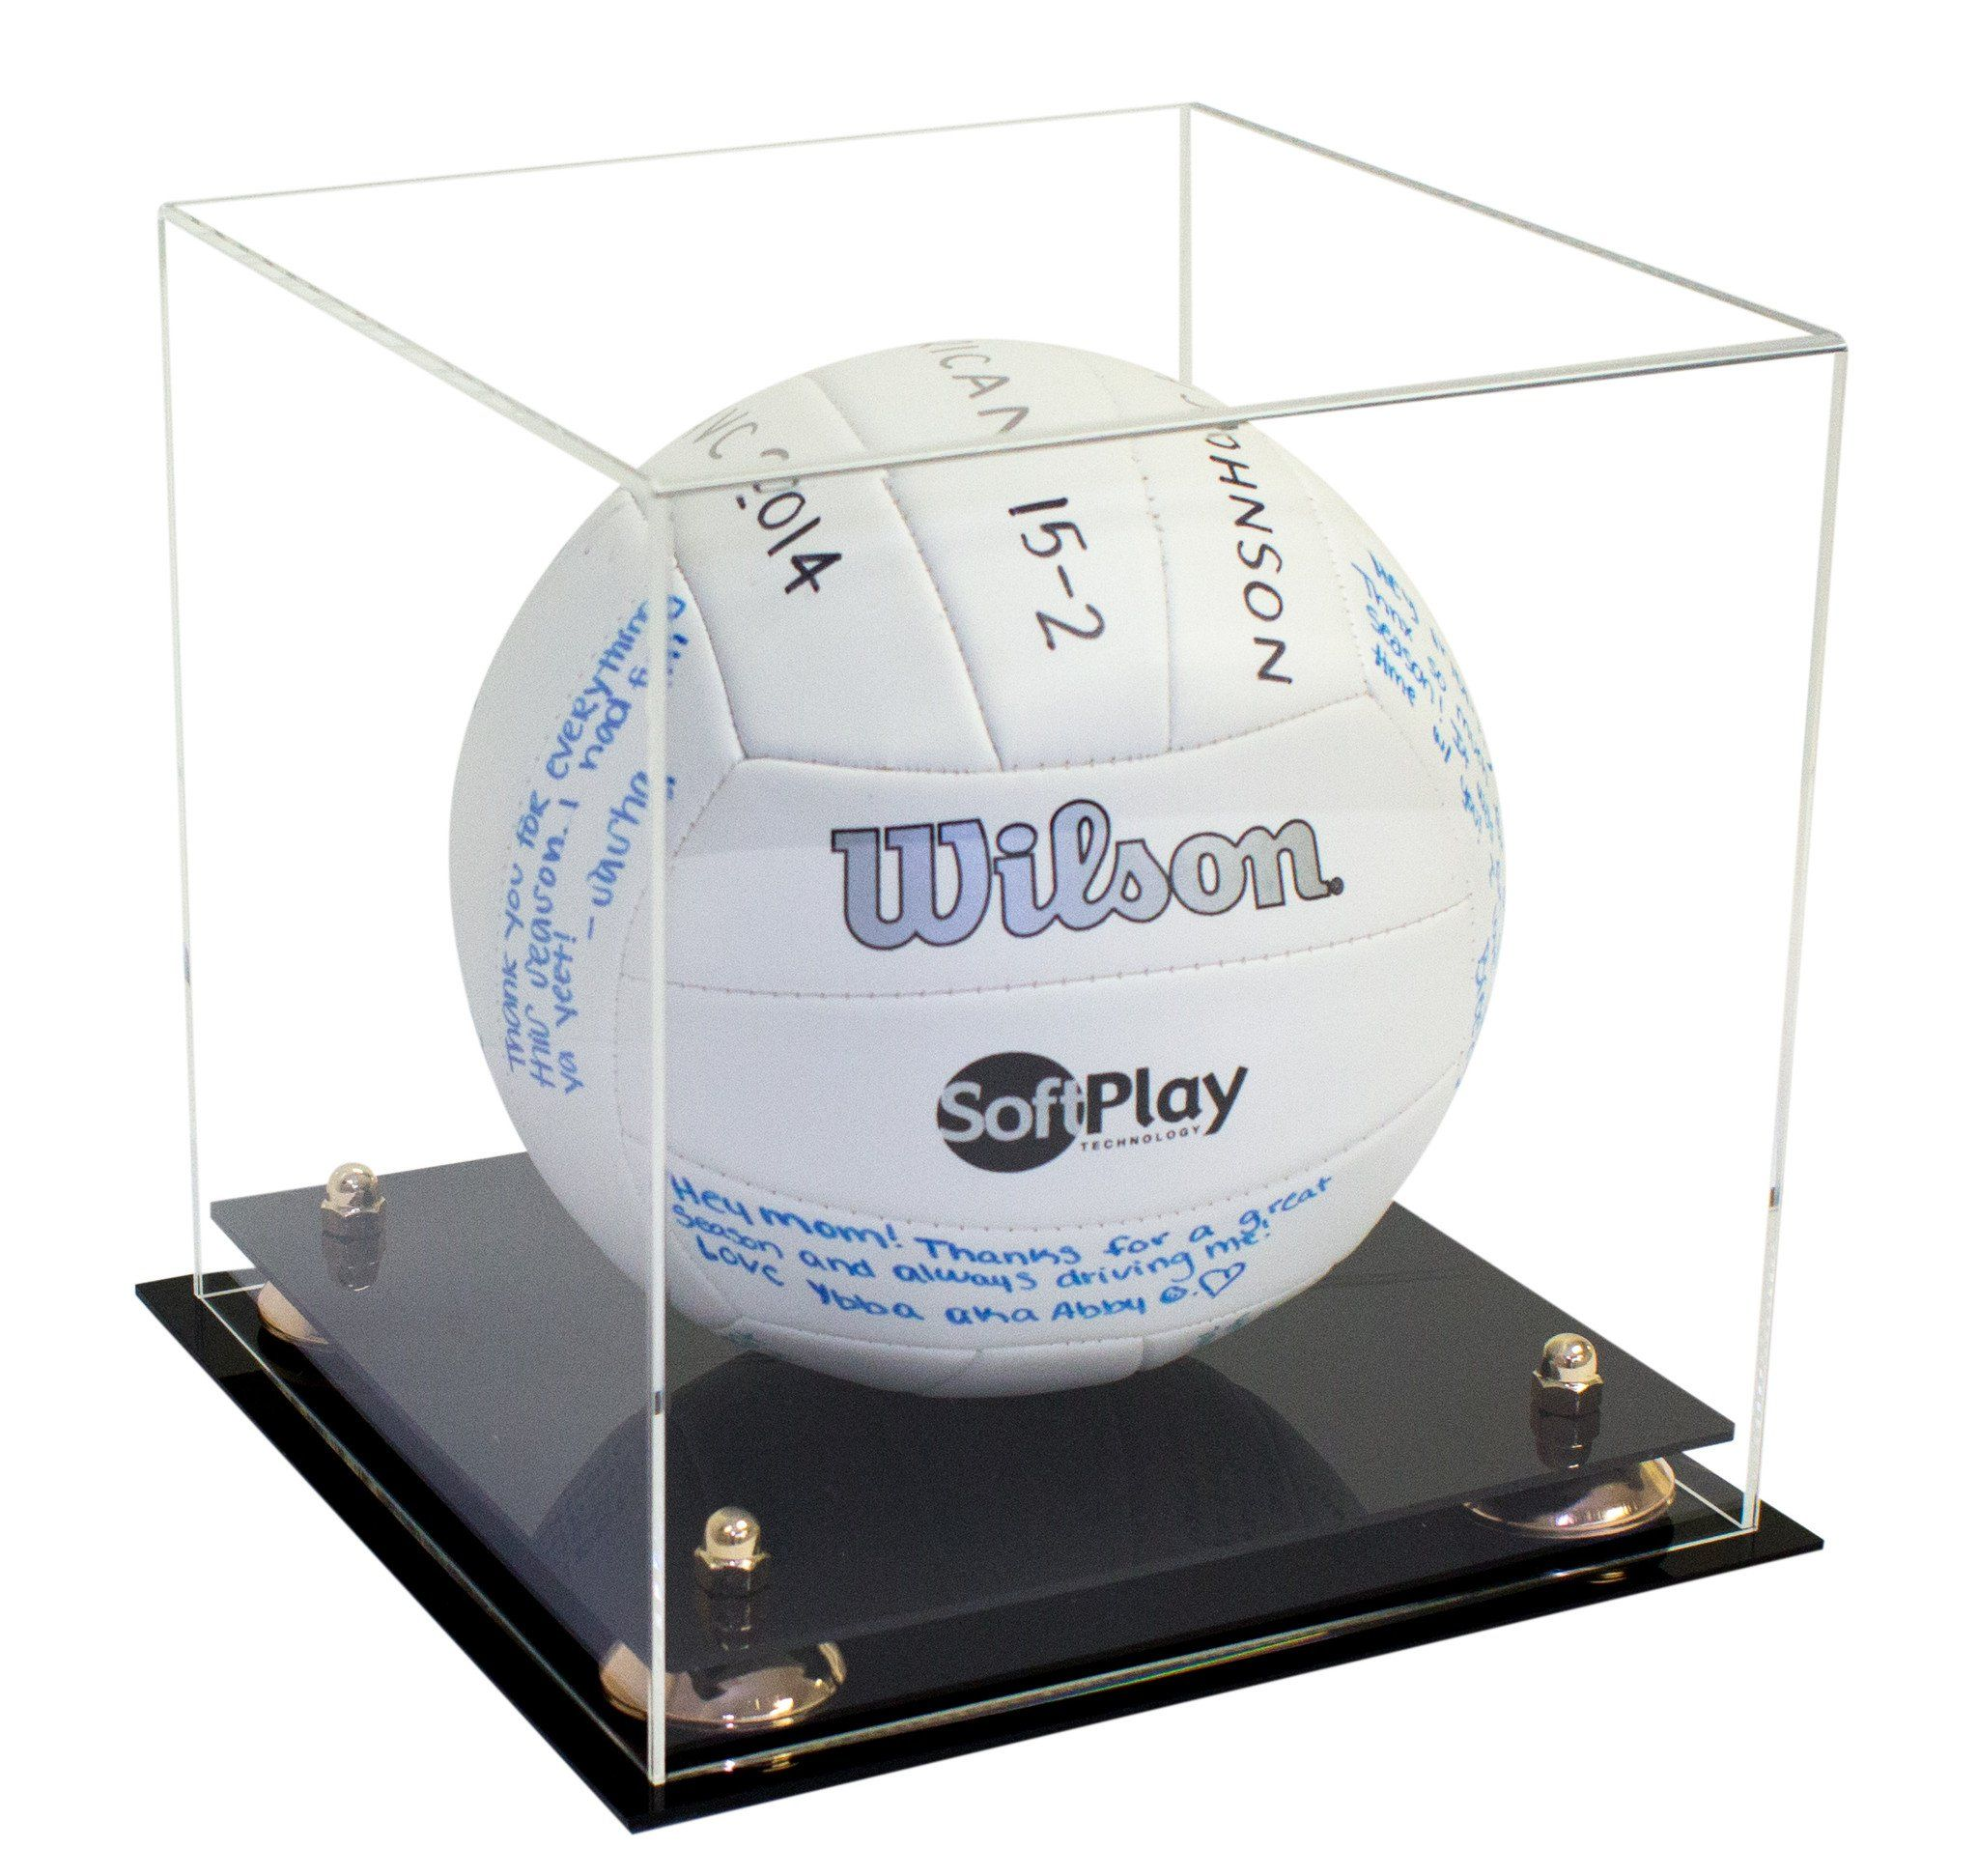 Deluxe Clear Acrylic Volleyball Display Case With Risers A027 Display Case Acrylic Display Box Clear Acrylic